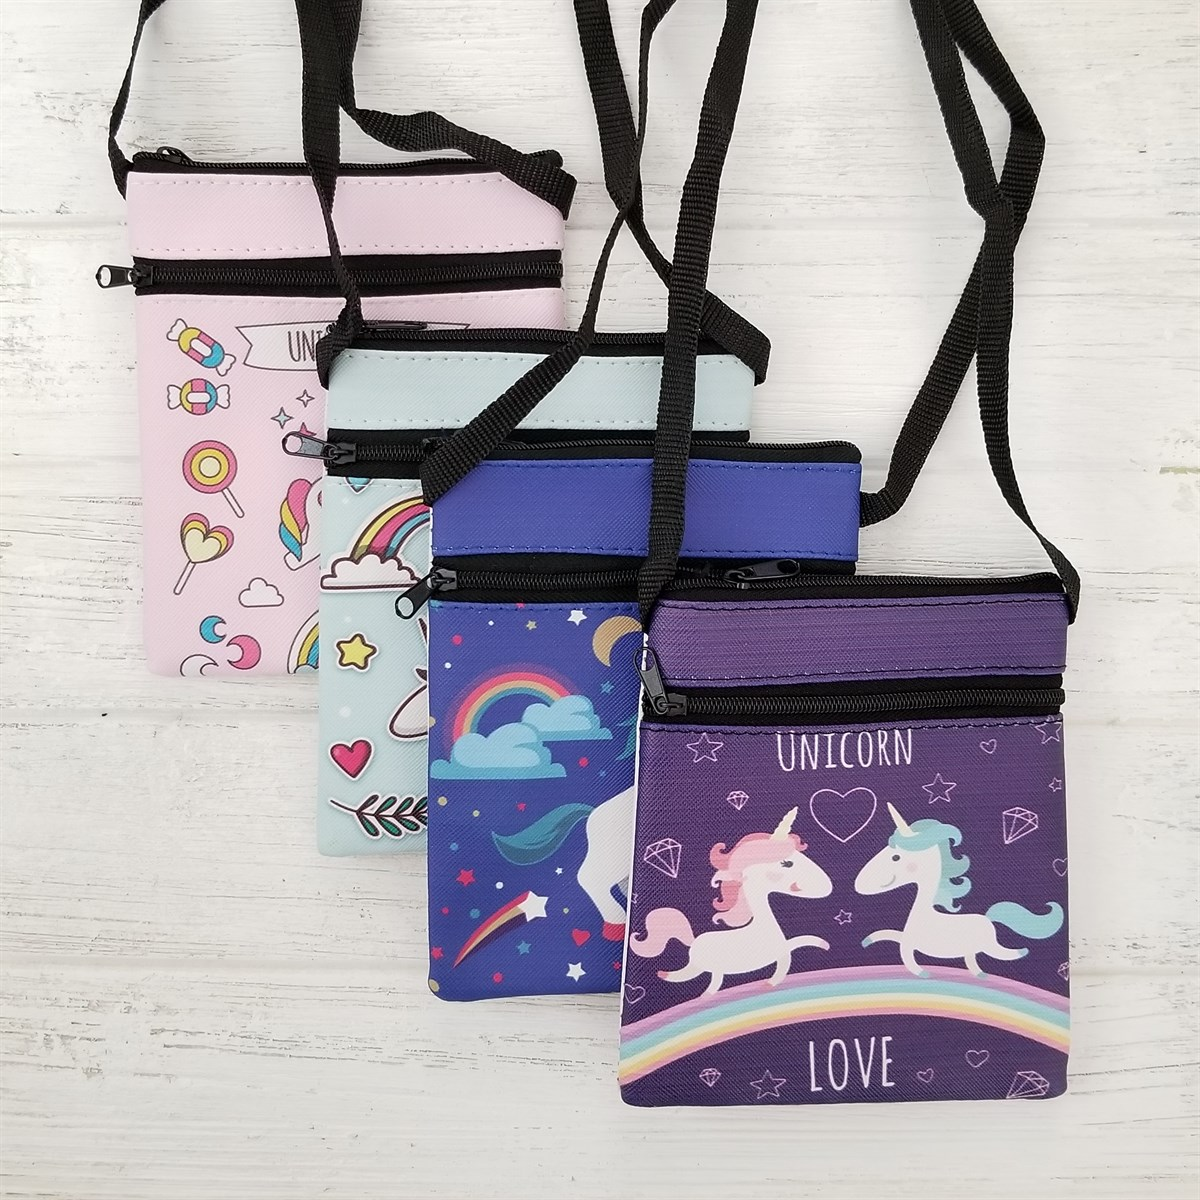 Mini Unicorn Messenger Bag